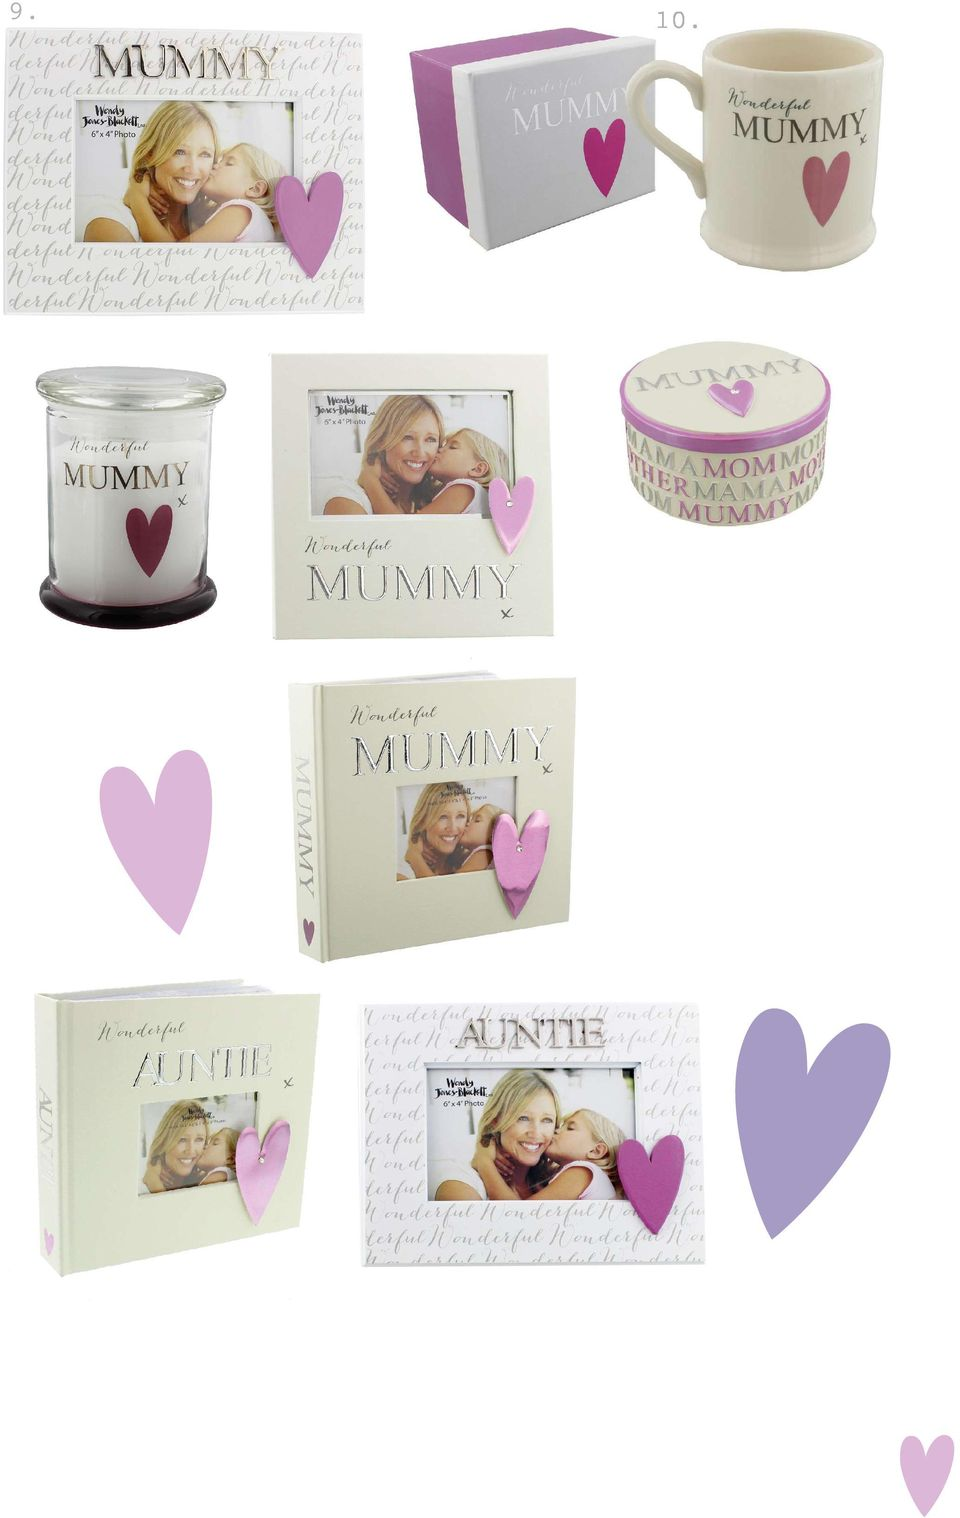 Mummy Glass Pink Jar Candle WJ302MY ctn qty:18 11cm x 9cm x 9cm 12. Mummy Photo Frame WJ305MY ctn qty:12 6 x 4 19cm x 19cm x 2cm 13.